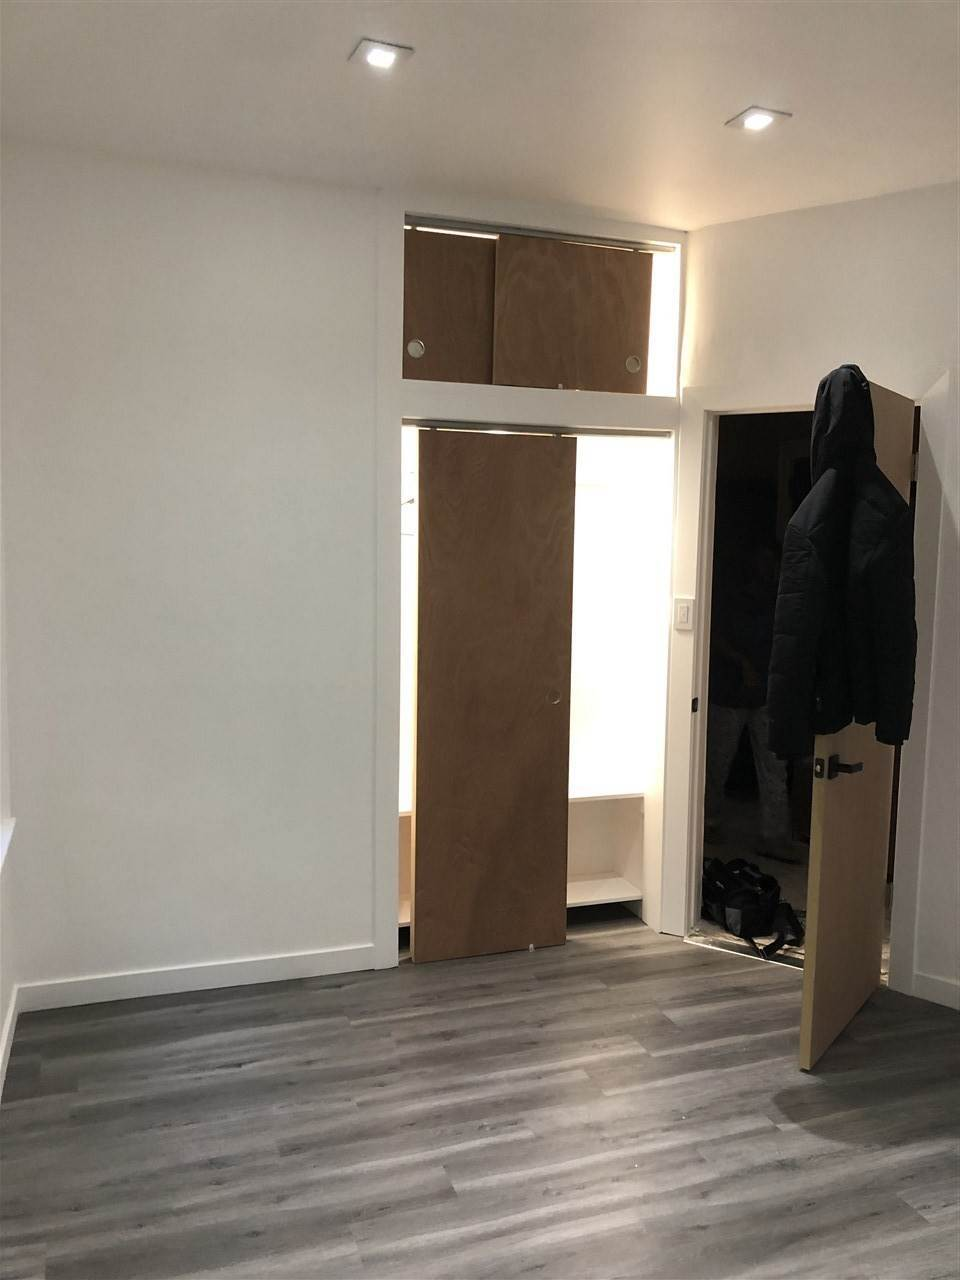 9. Residential for Rent at 196 Danforth Avenue #1 Jersey City, New Jersey 07305 United States